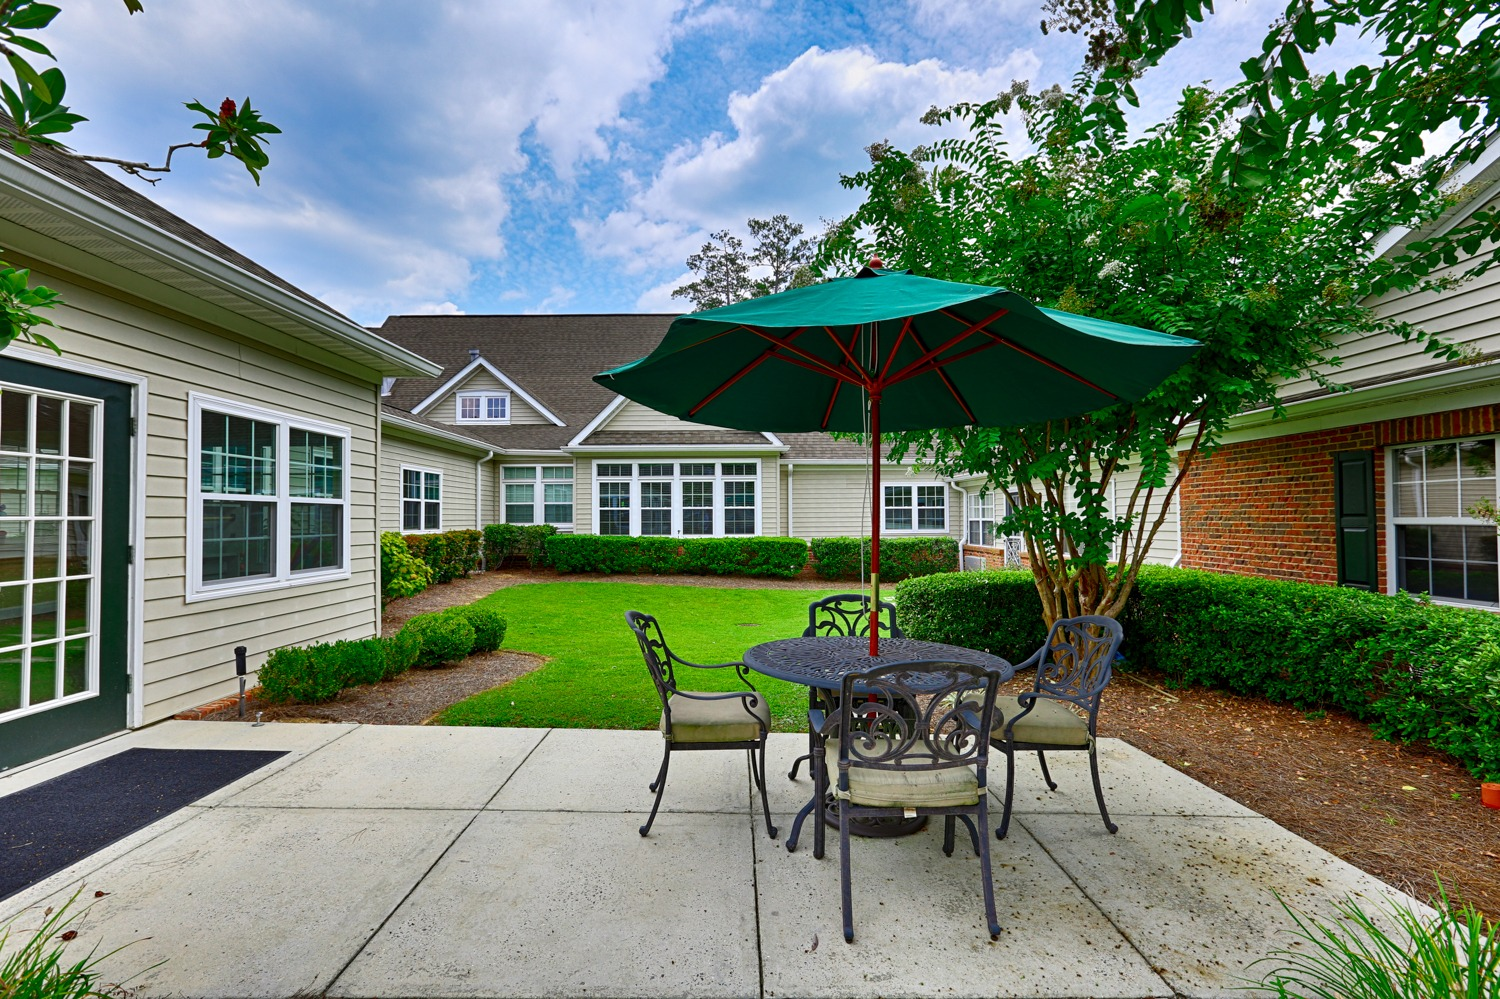 Mountain Brook - Outdoor area with patio furniture